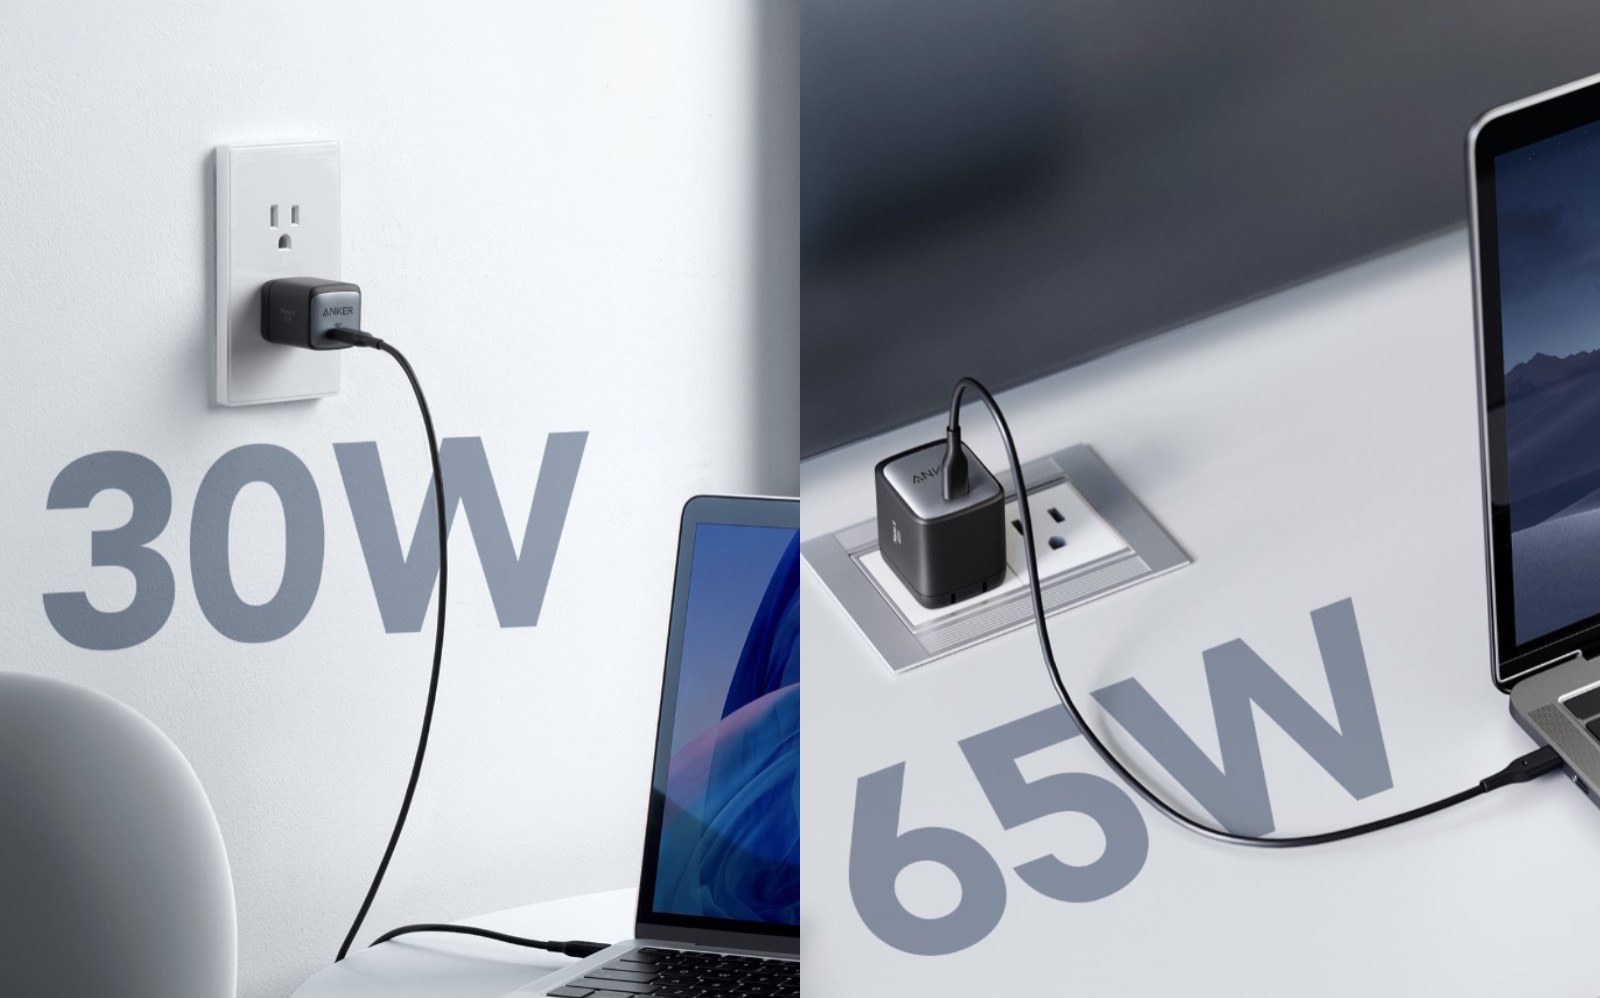 Anker GanII 30W and 65W Charger